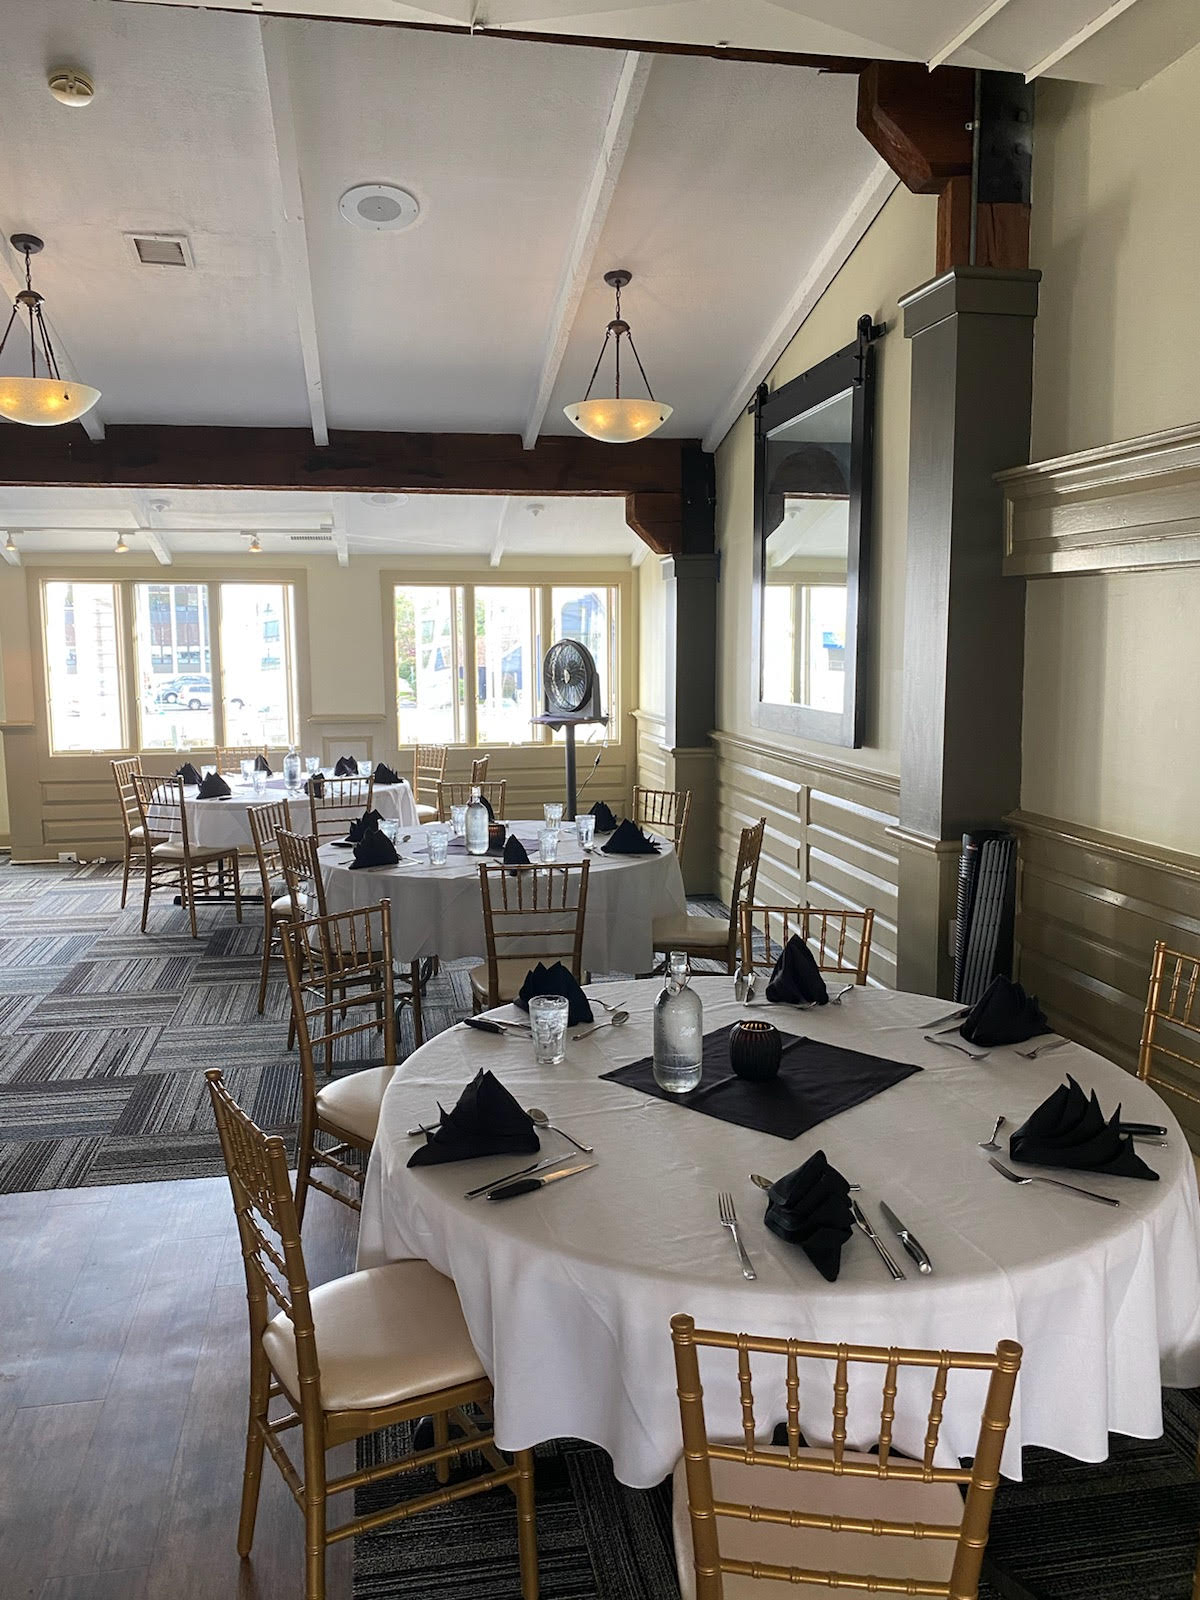 Call or Email Us Today to Reserve Our Room for Your Special Event.